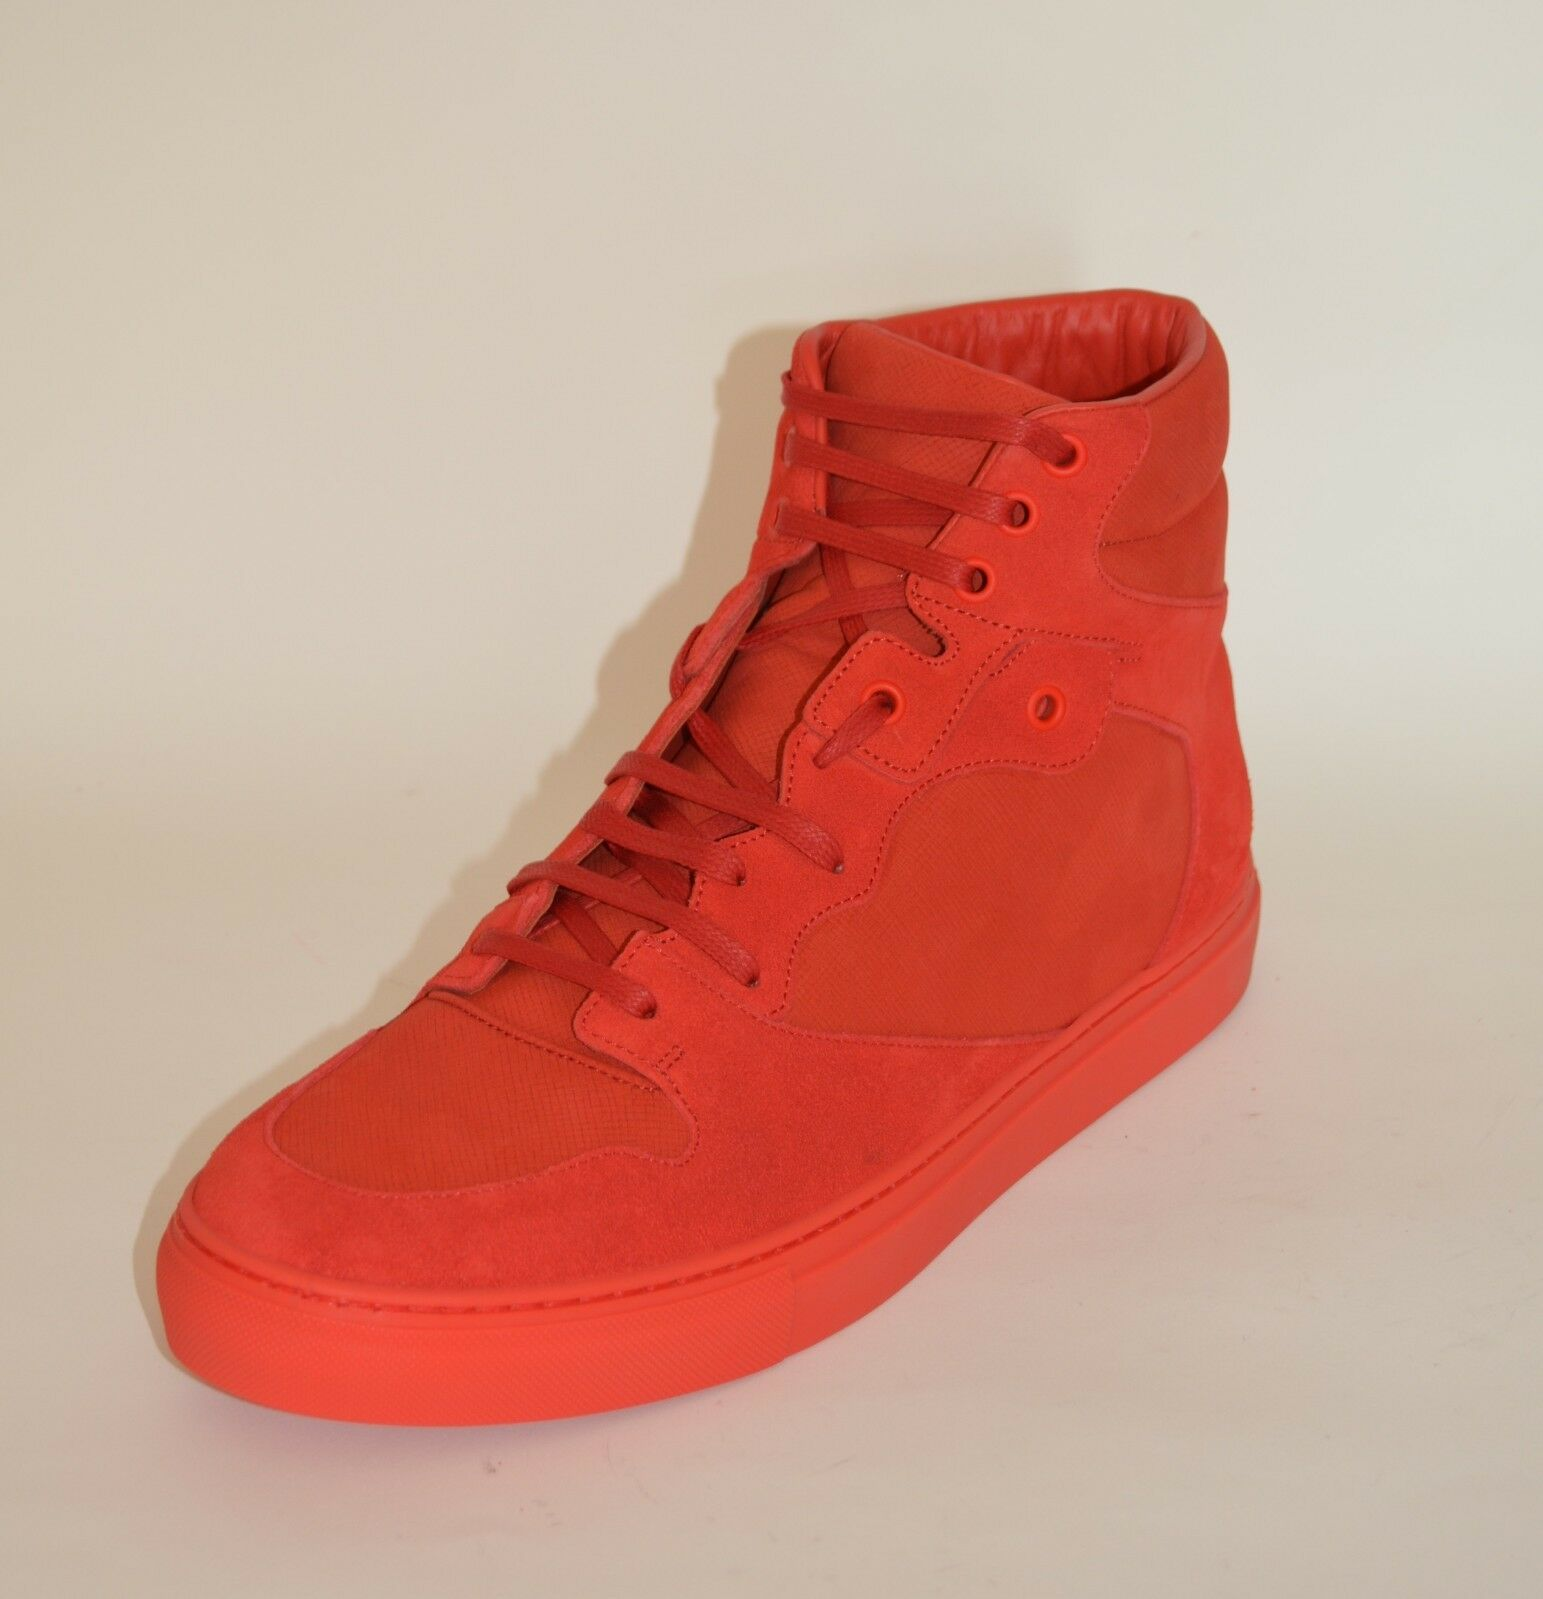 BALENCIAGA HITOP SUEDE LEATHER SNEAKERS US 10 EU 43 43 43 NEW Uomo  635 RED 688020